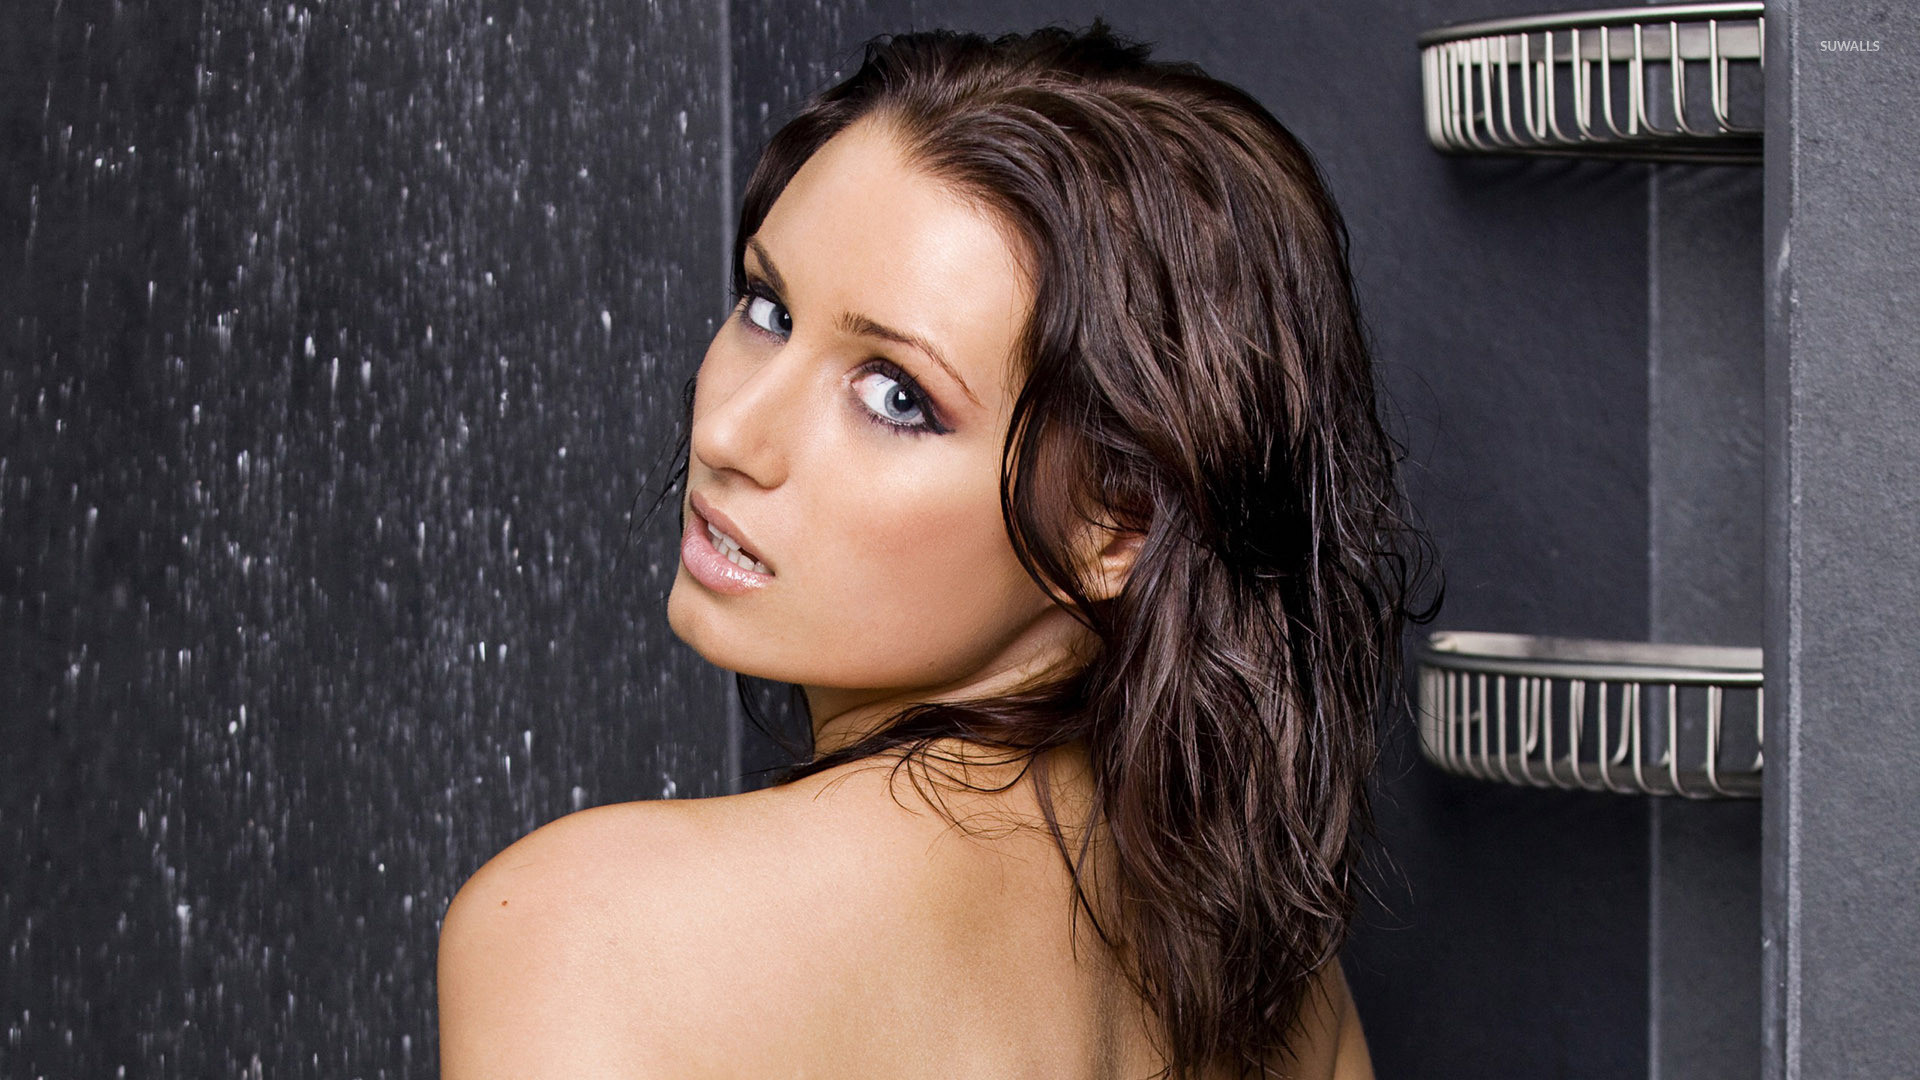 Sammy Braddy nudes (57 pics), images Paparazzi, Twitter, cleavage 2017